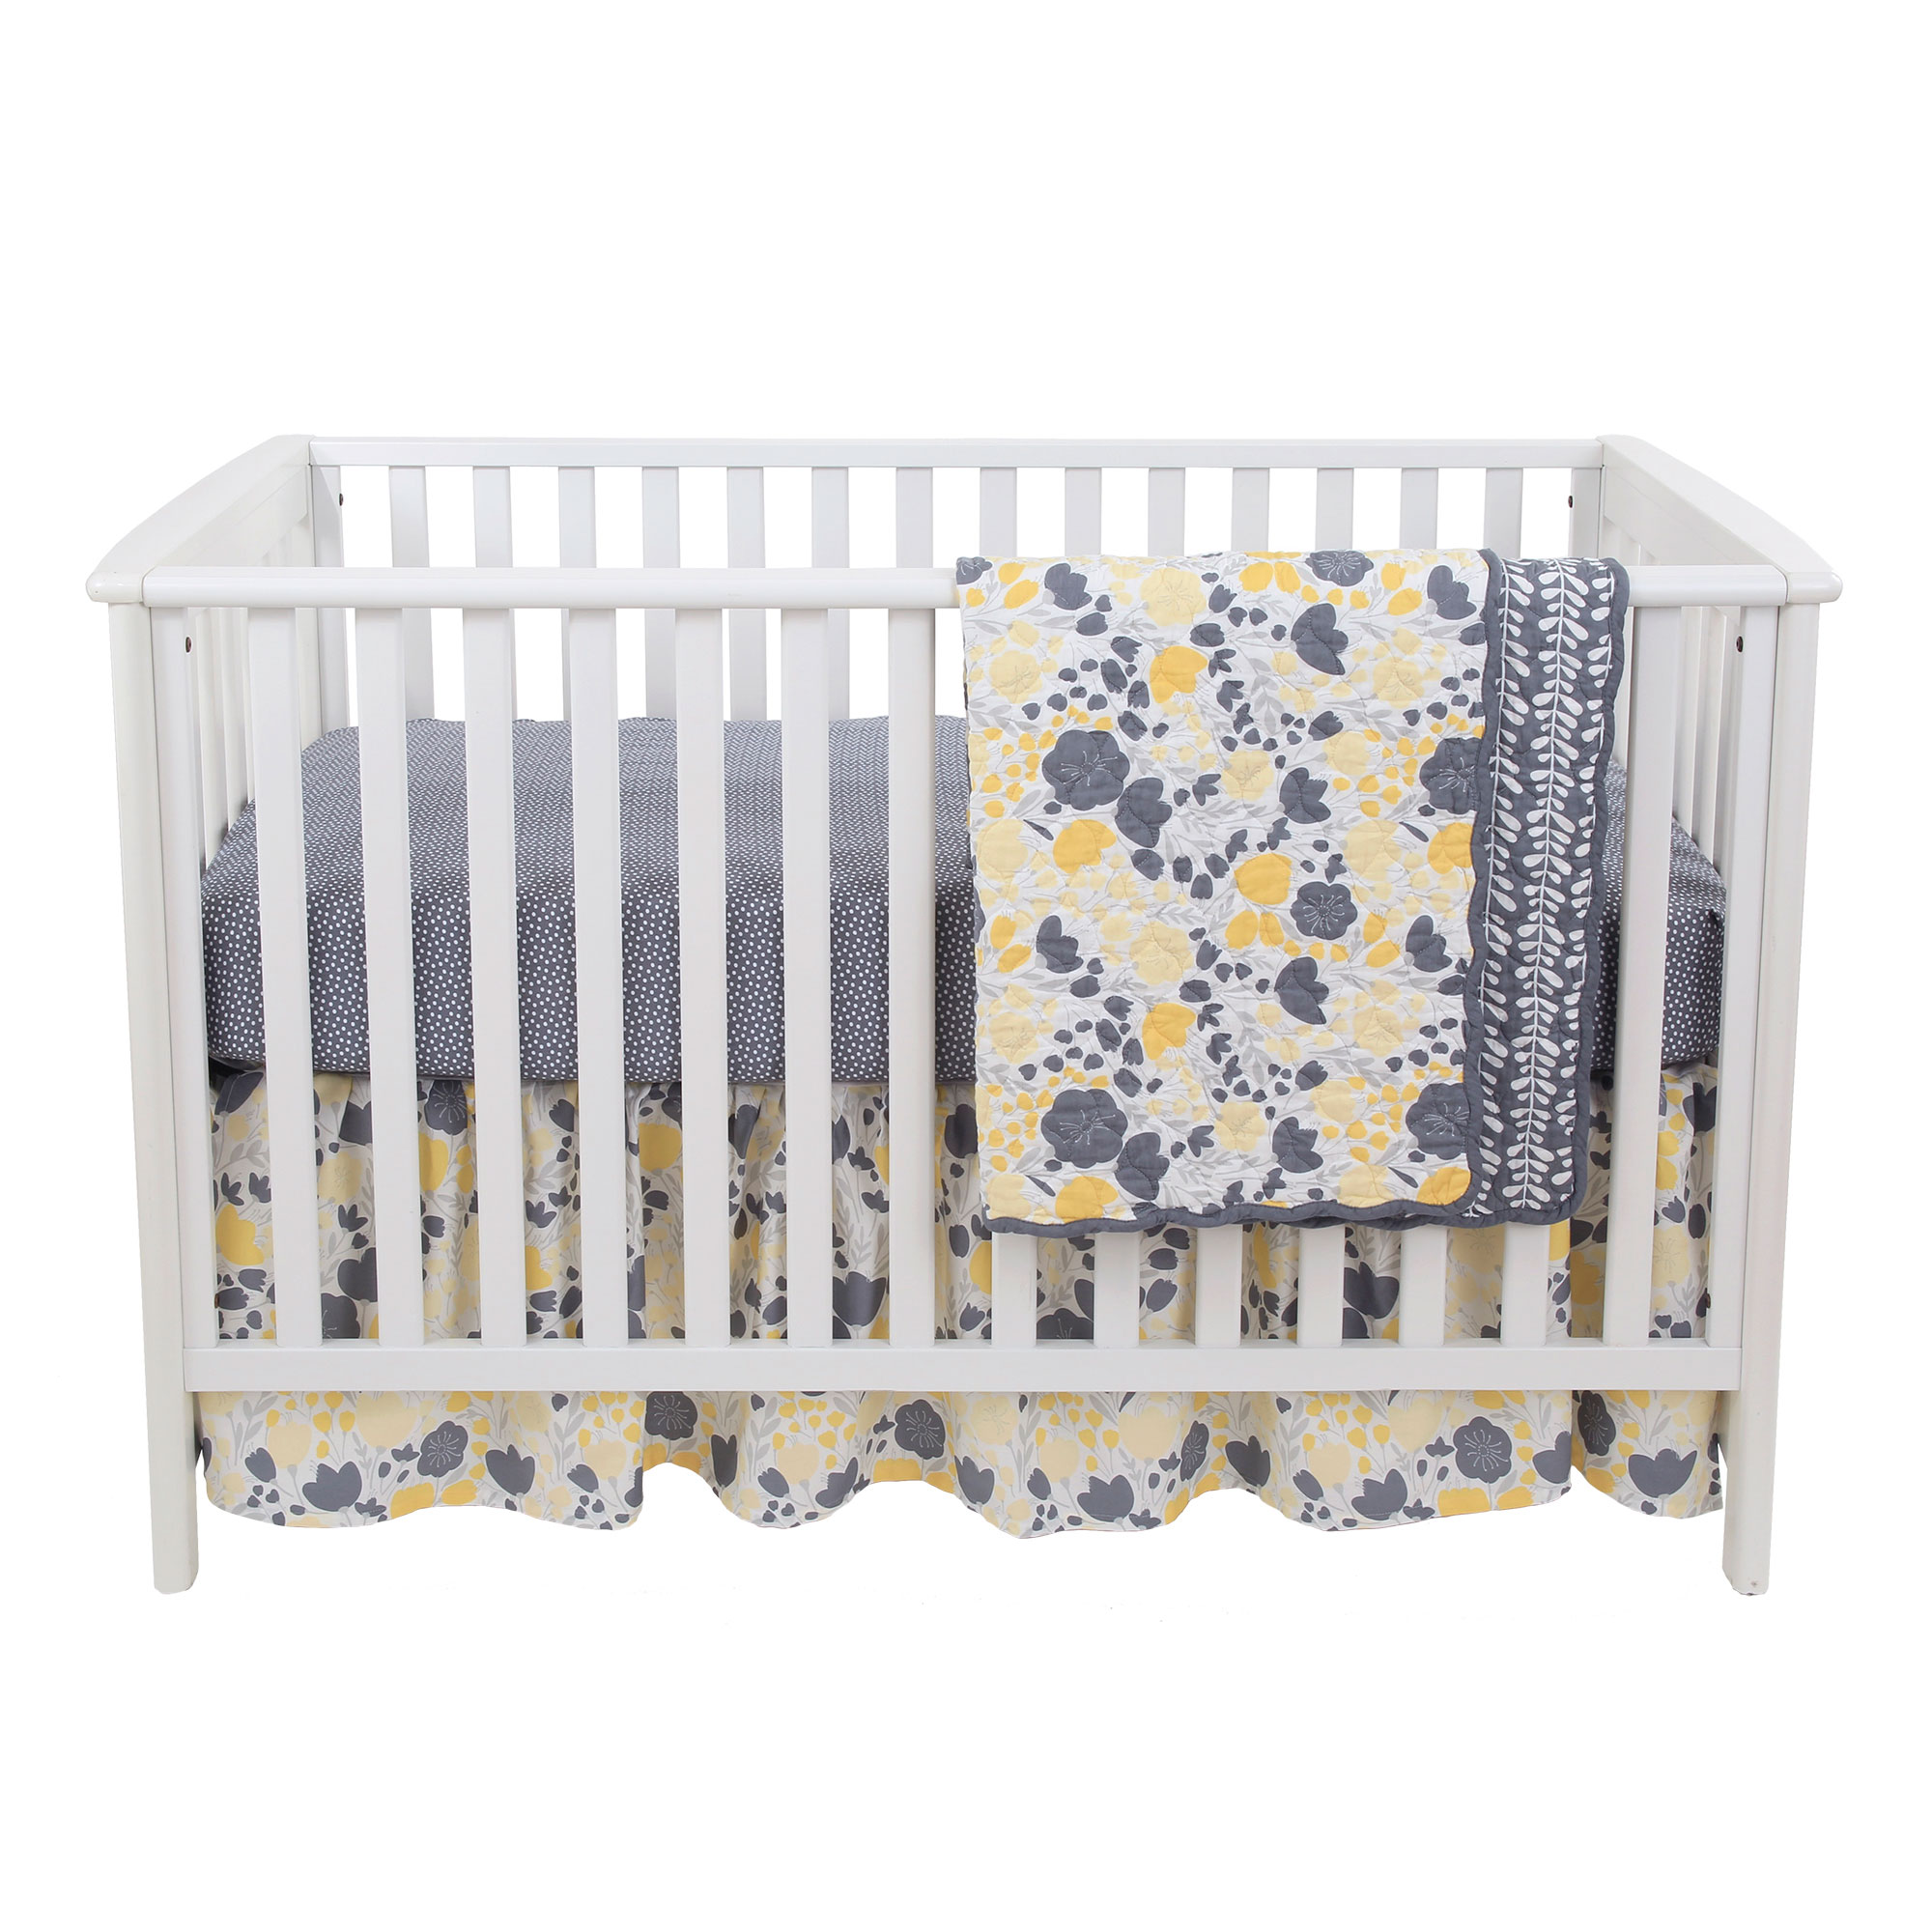 Balboa Baby 3 Piece Baby Girl Crib Bedding Set - Yellow and Grey Floral Design - Yellow Tulip with Grey Sheet